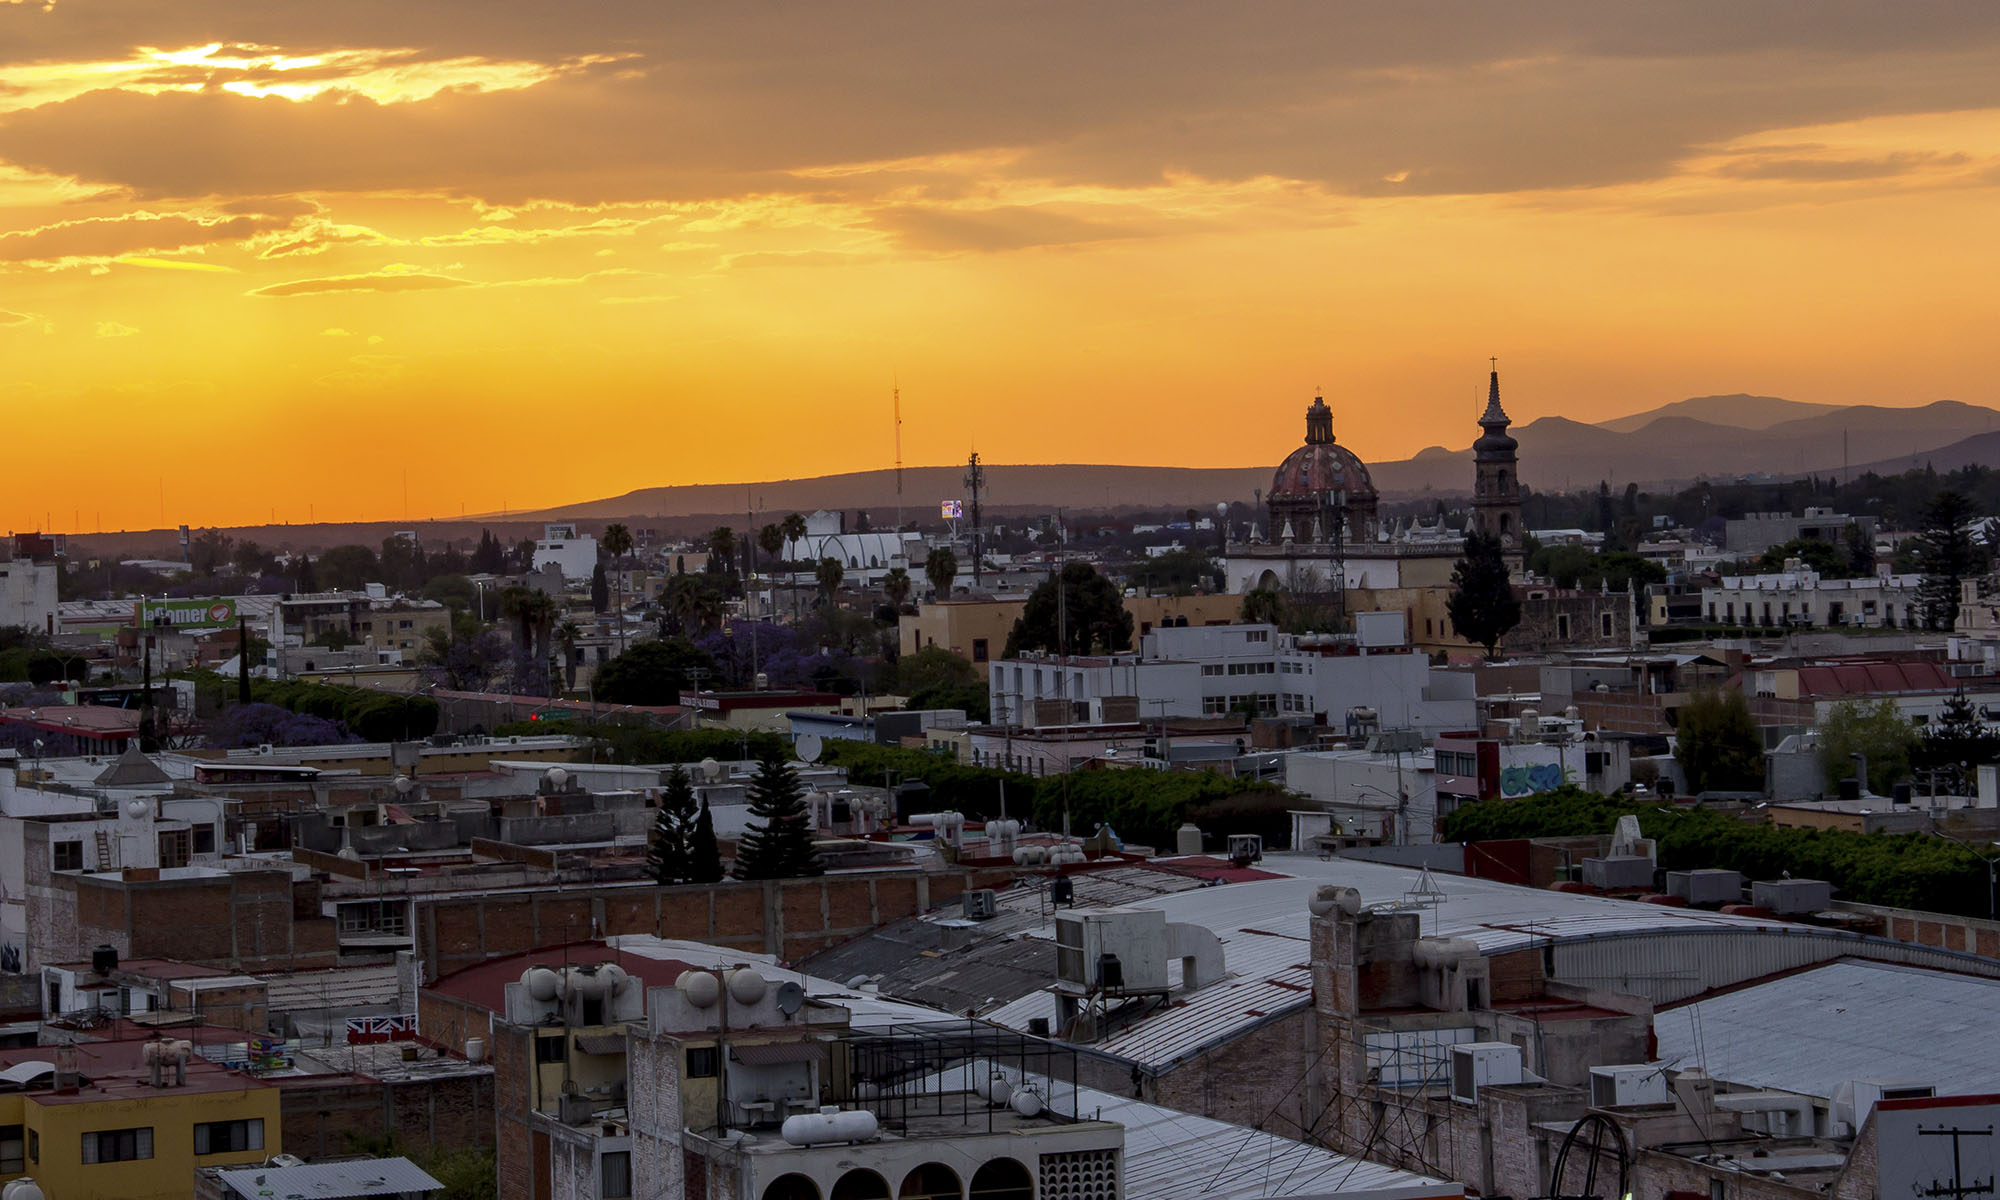 The sun sets over Santiago de Querétaro, the capital and largest city in the state of Querétaro in Mexico.